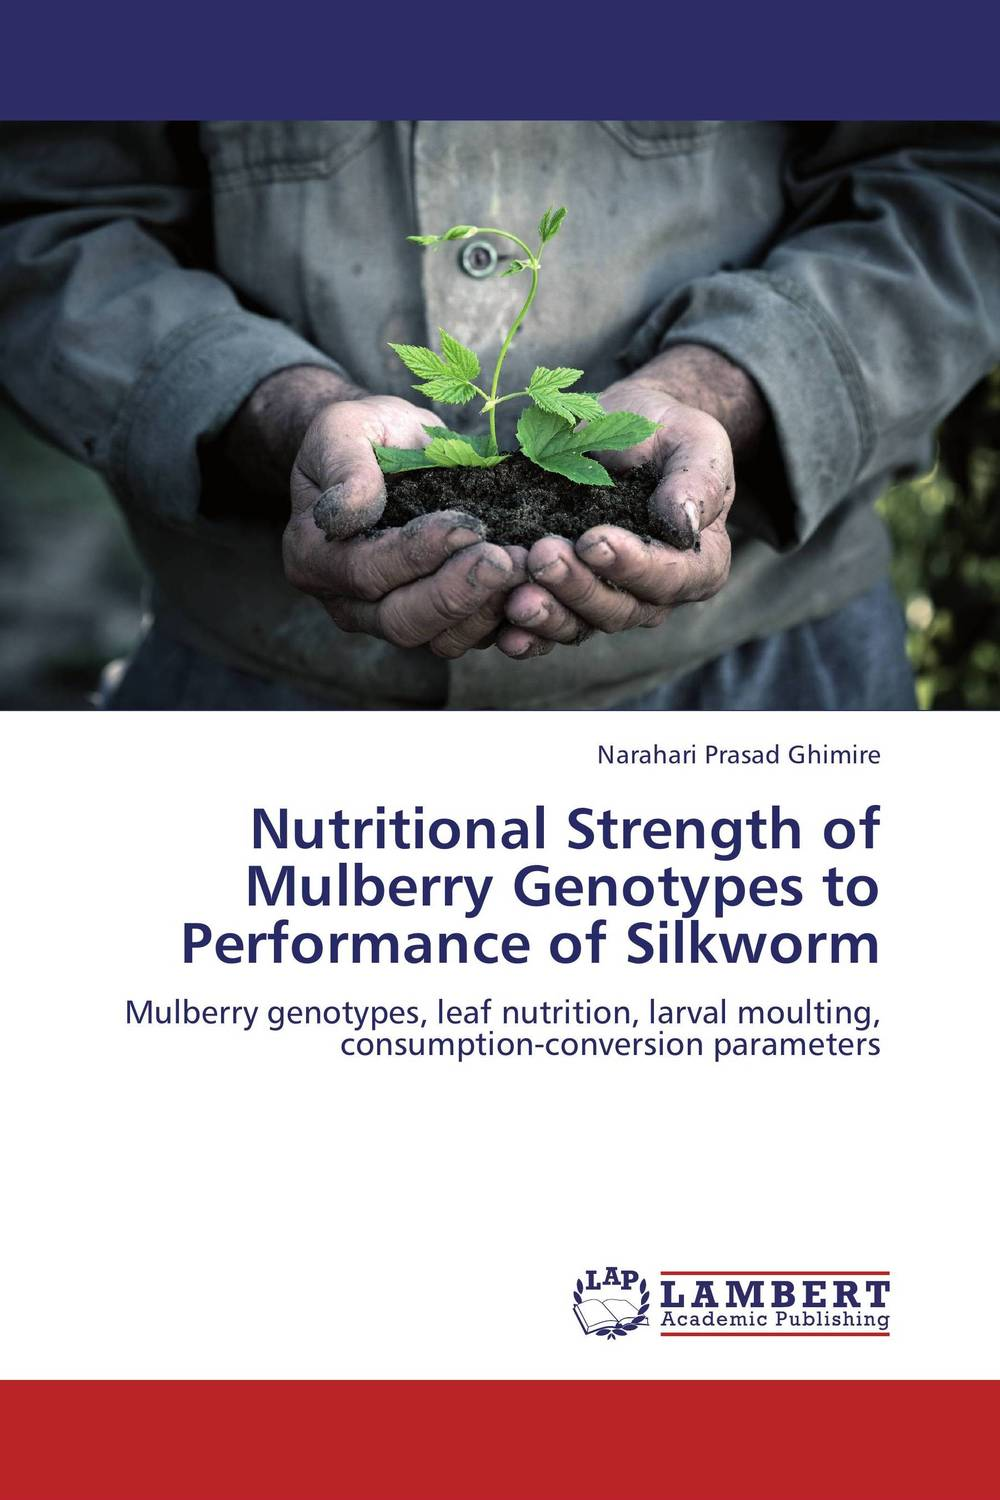 Nutritional Strength of Mulberry Genotypes to Performance of Silkworm mulberry leaf extract powder natural mulberry leaves p e 10 1 health care herbal dietary supplements